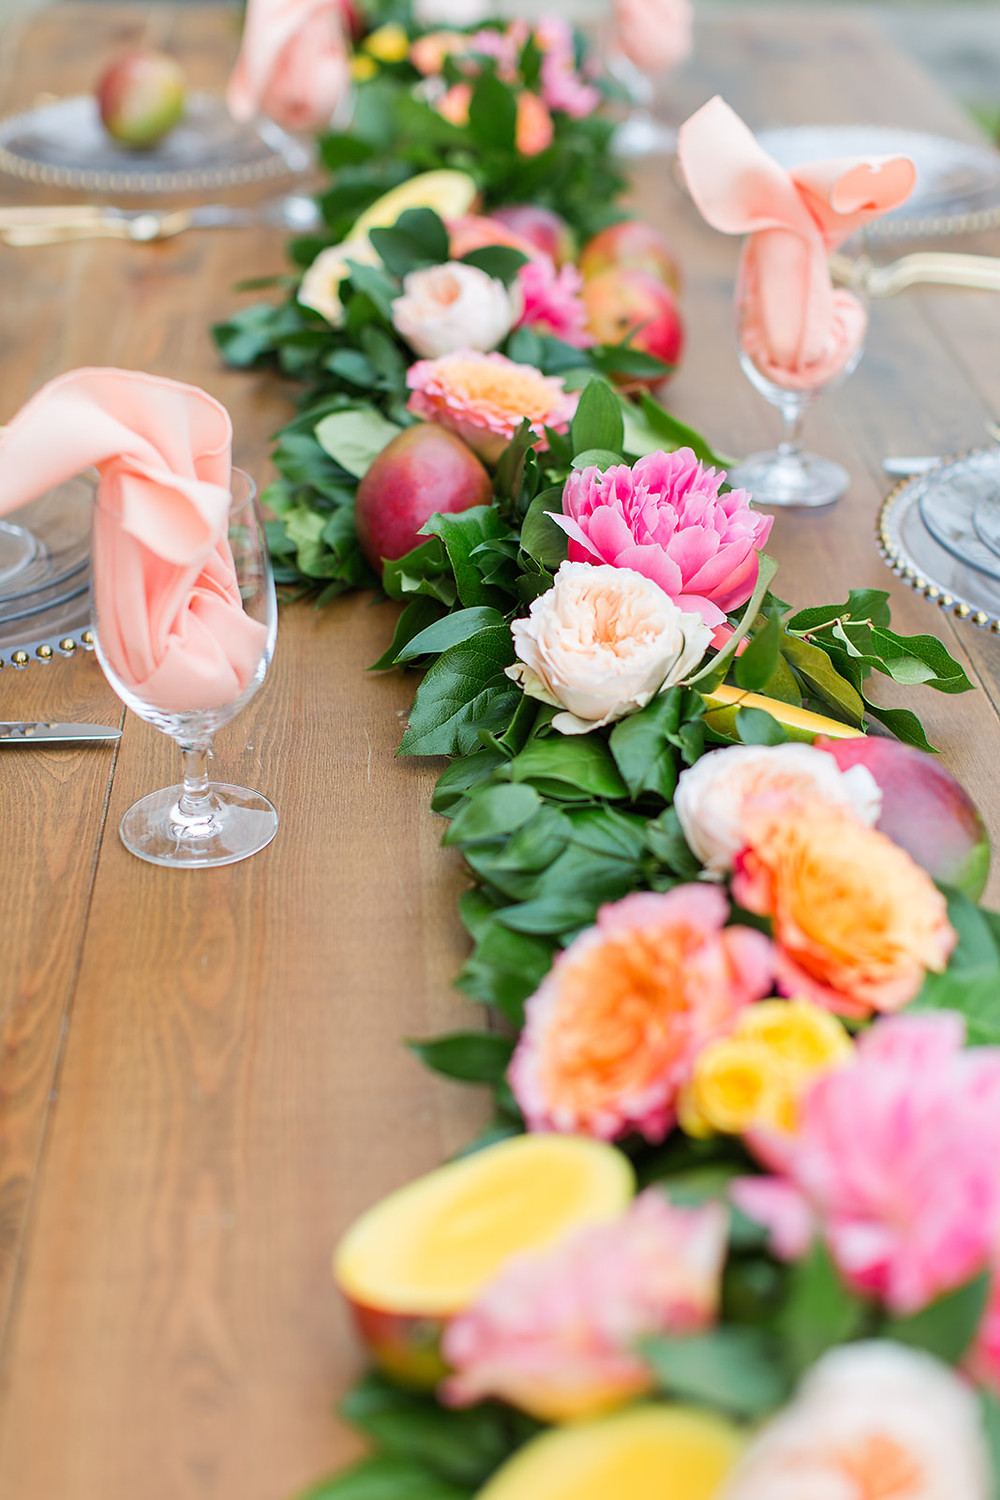 Bright floral garland down the middle of a table with drink and serve ware.